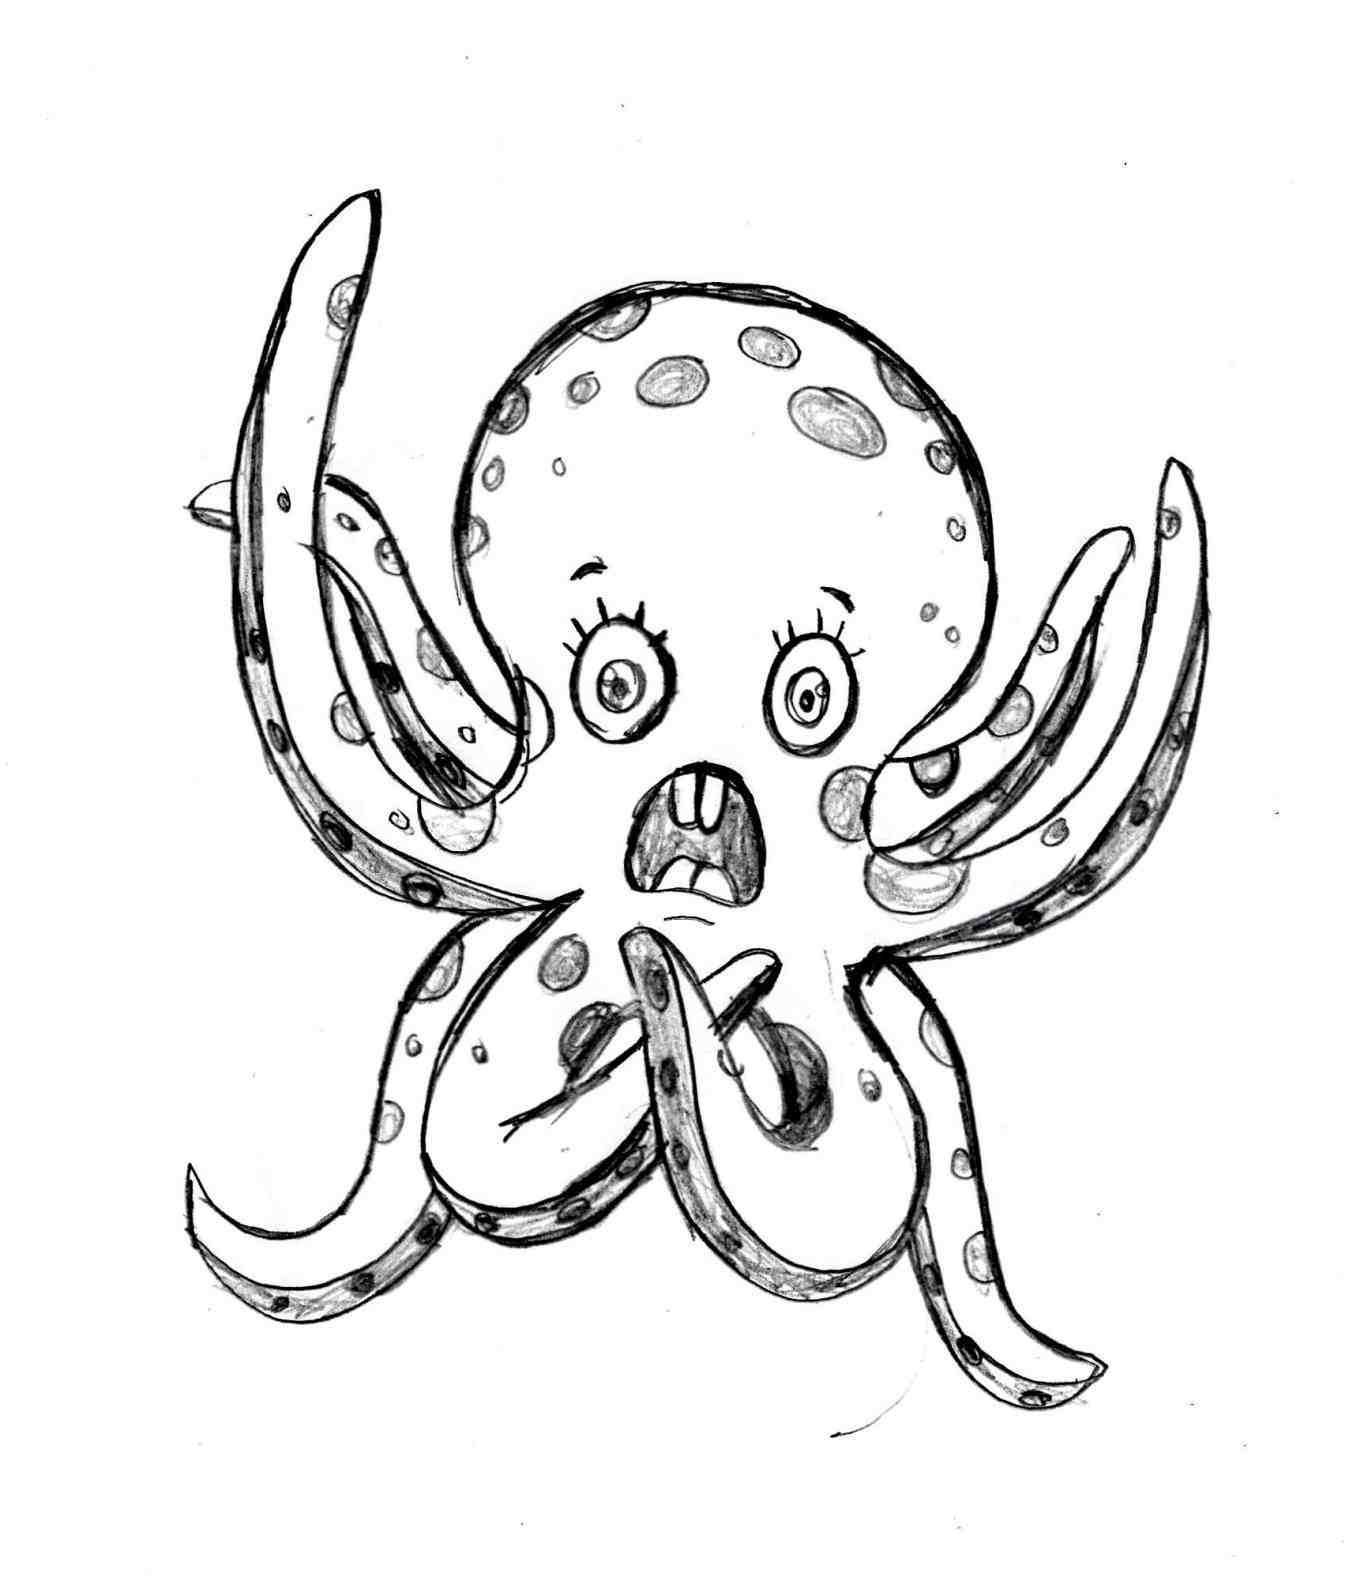 realistic octopus drawing image result for realistic octopus drawing tatuaje de octopus realistic drawing